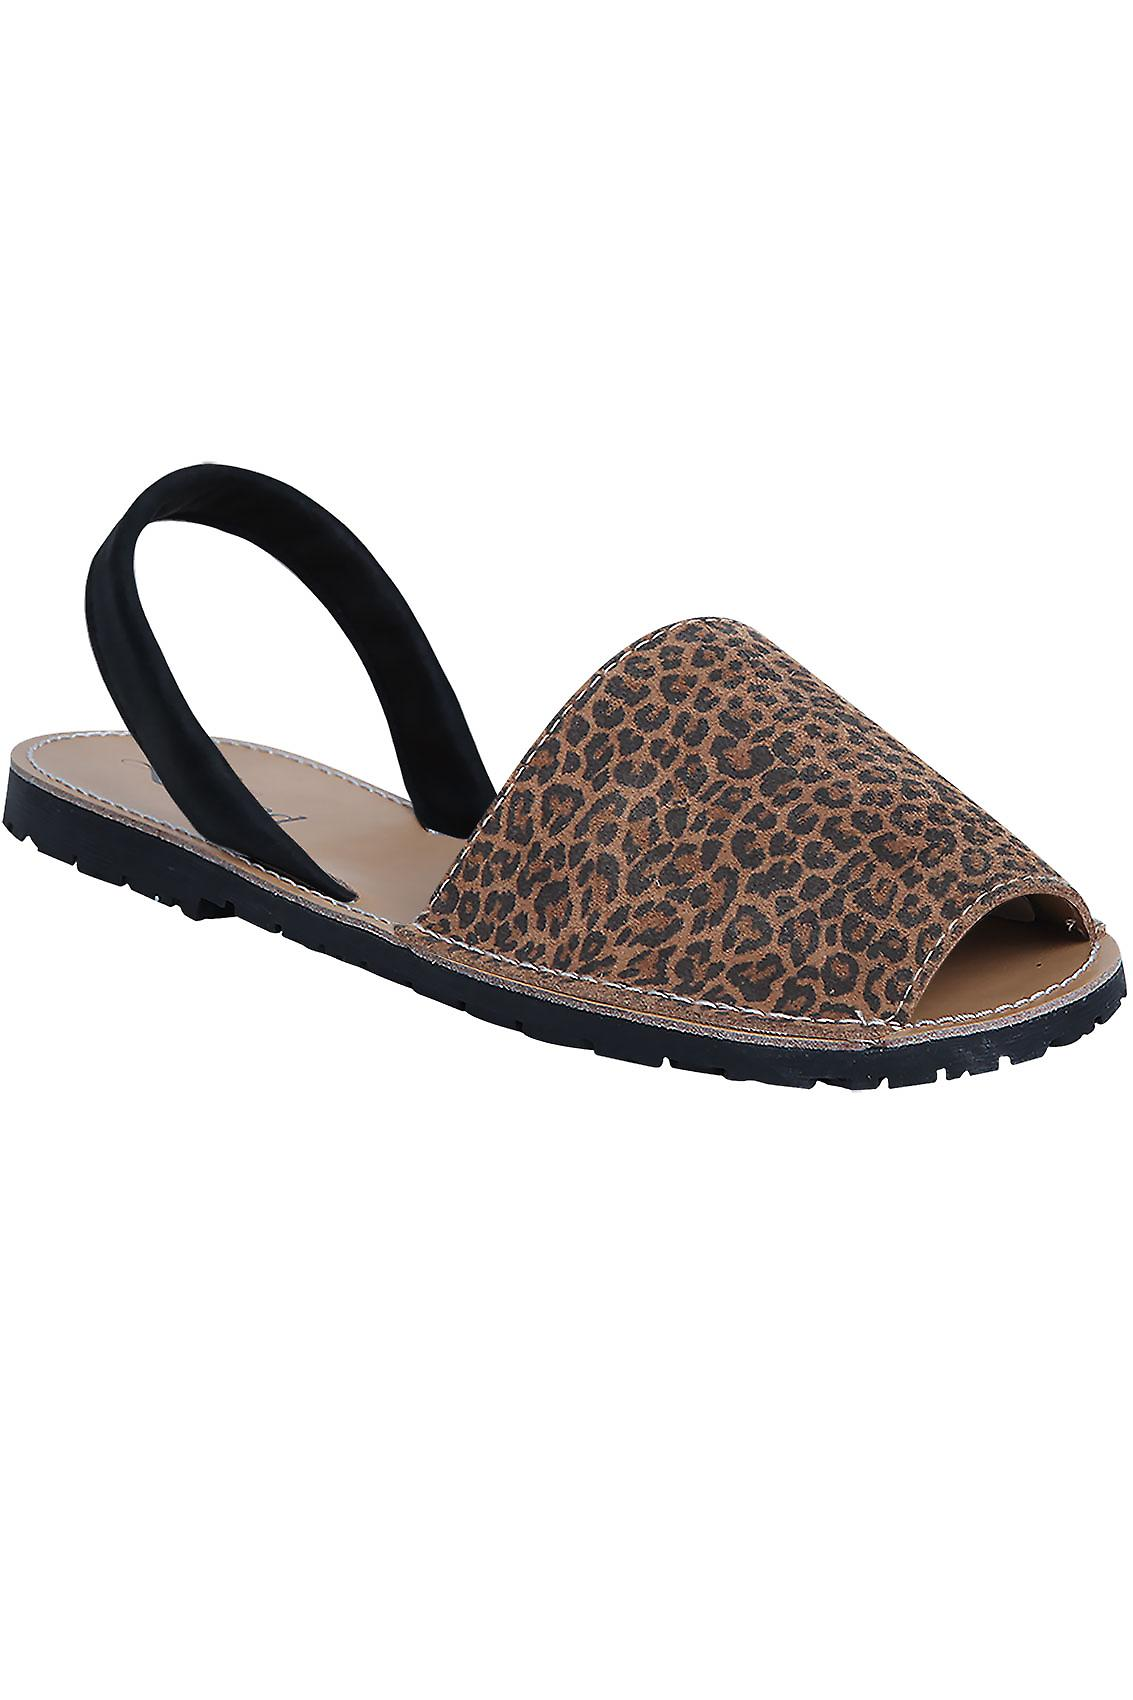 Tan Real Leather Leopard Print Peep Toe Sandals In E Fit